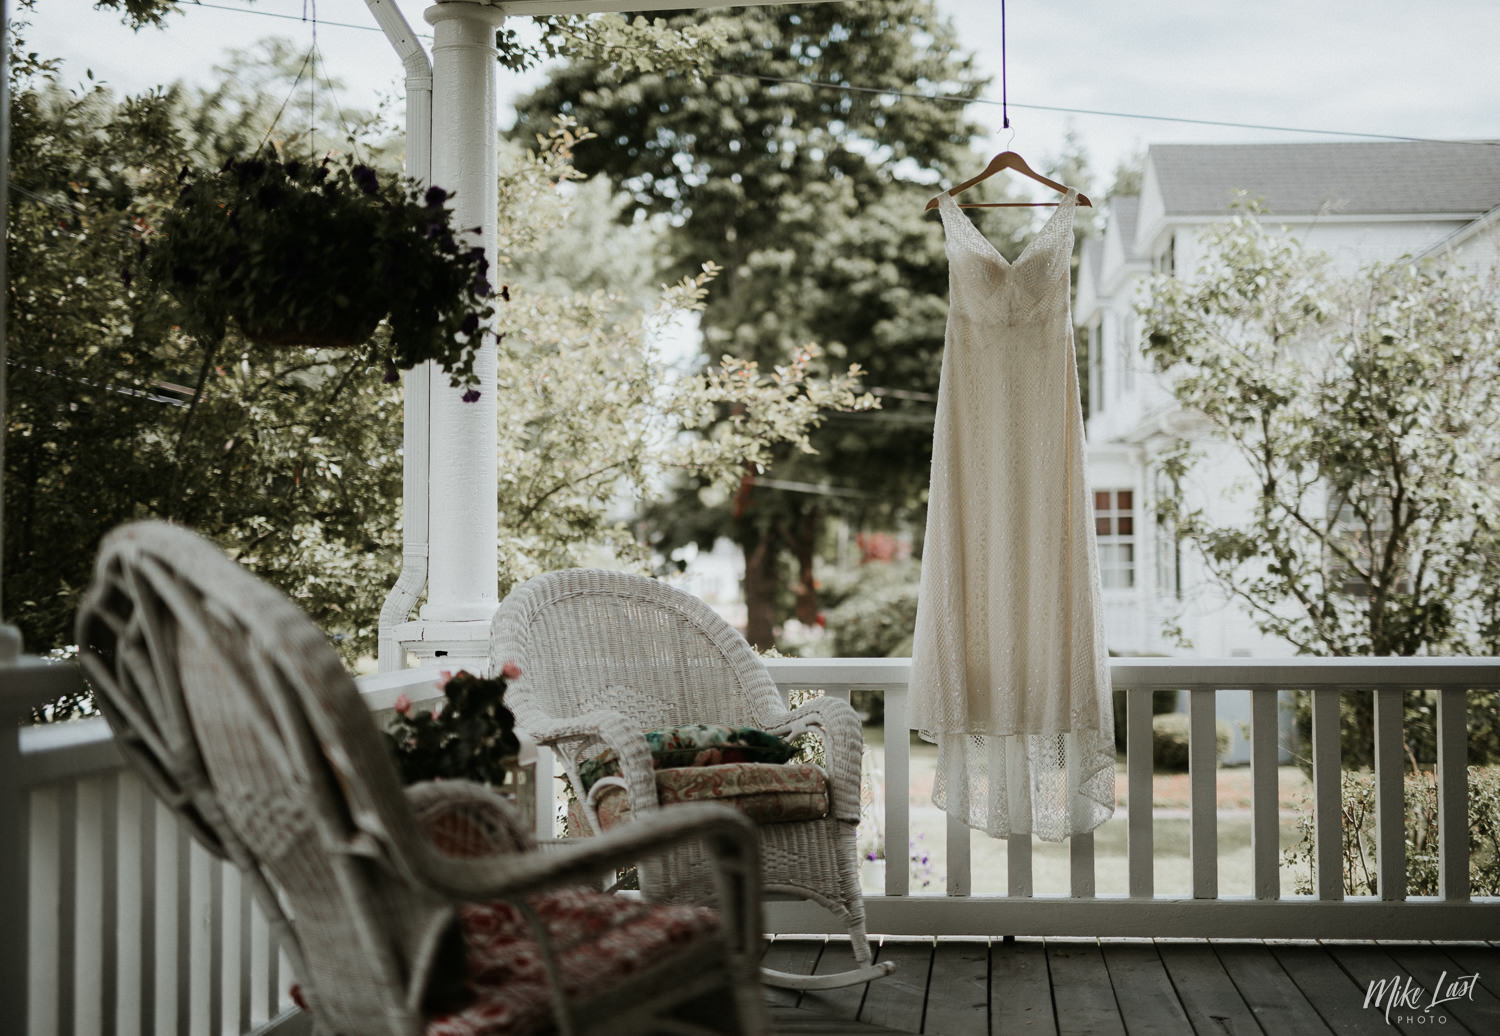 Wedding dress hanging on covered porch of century home in Liverpool, Nova Scotia.